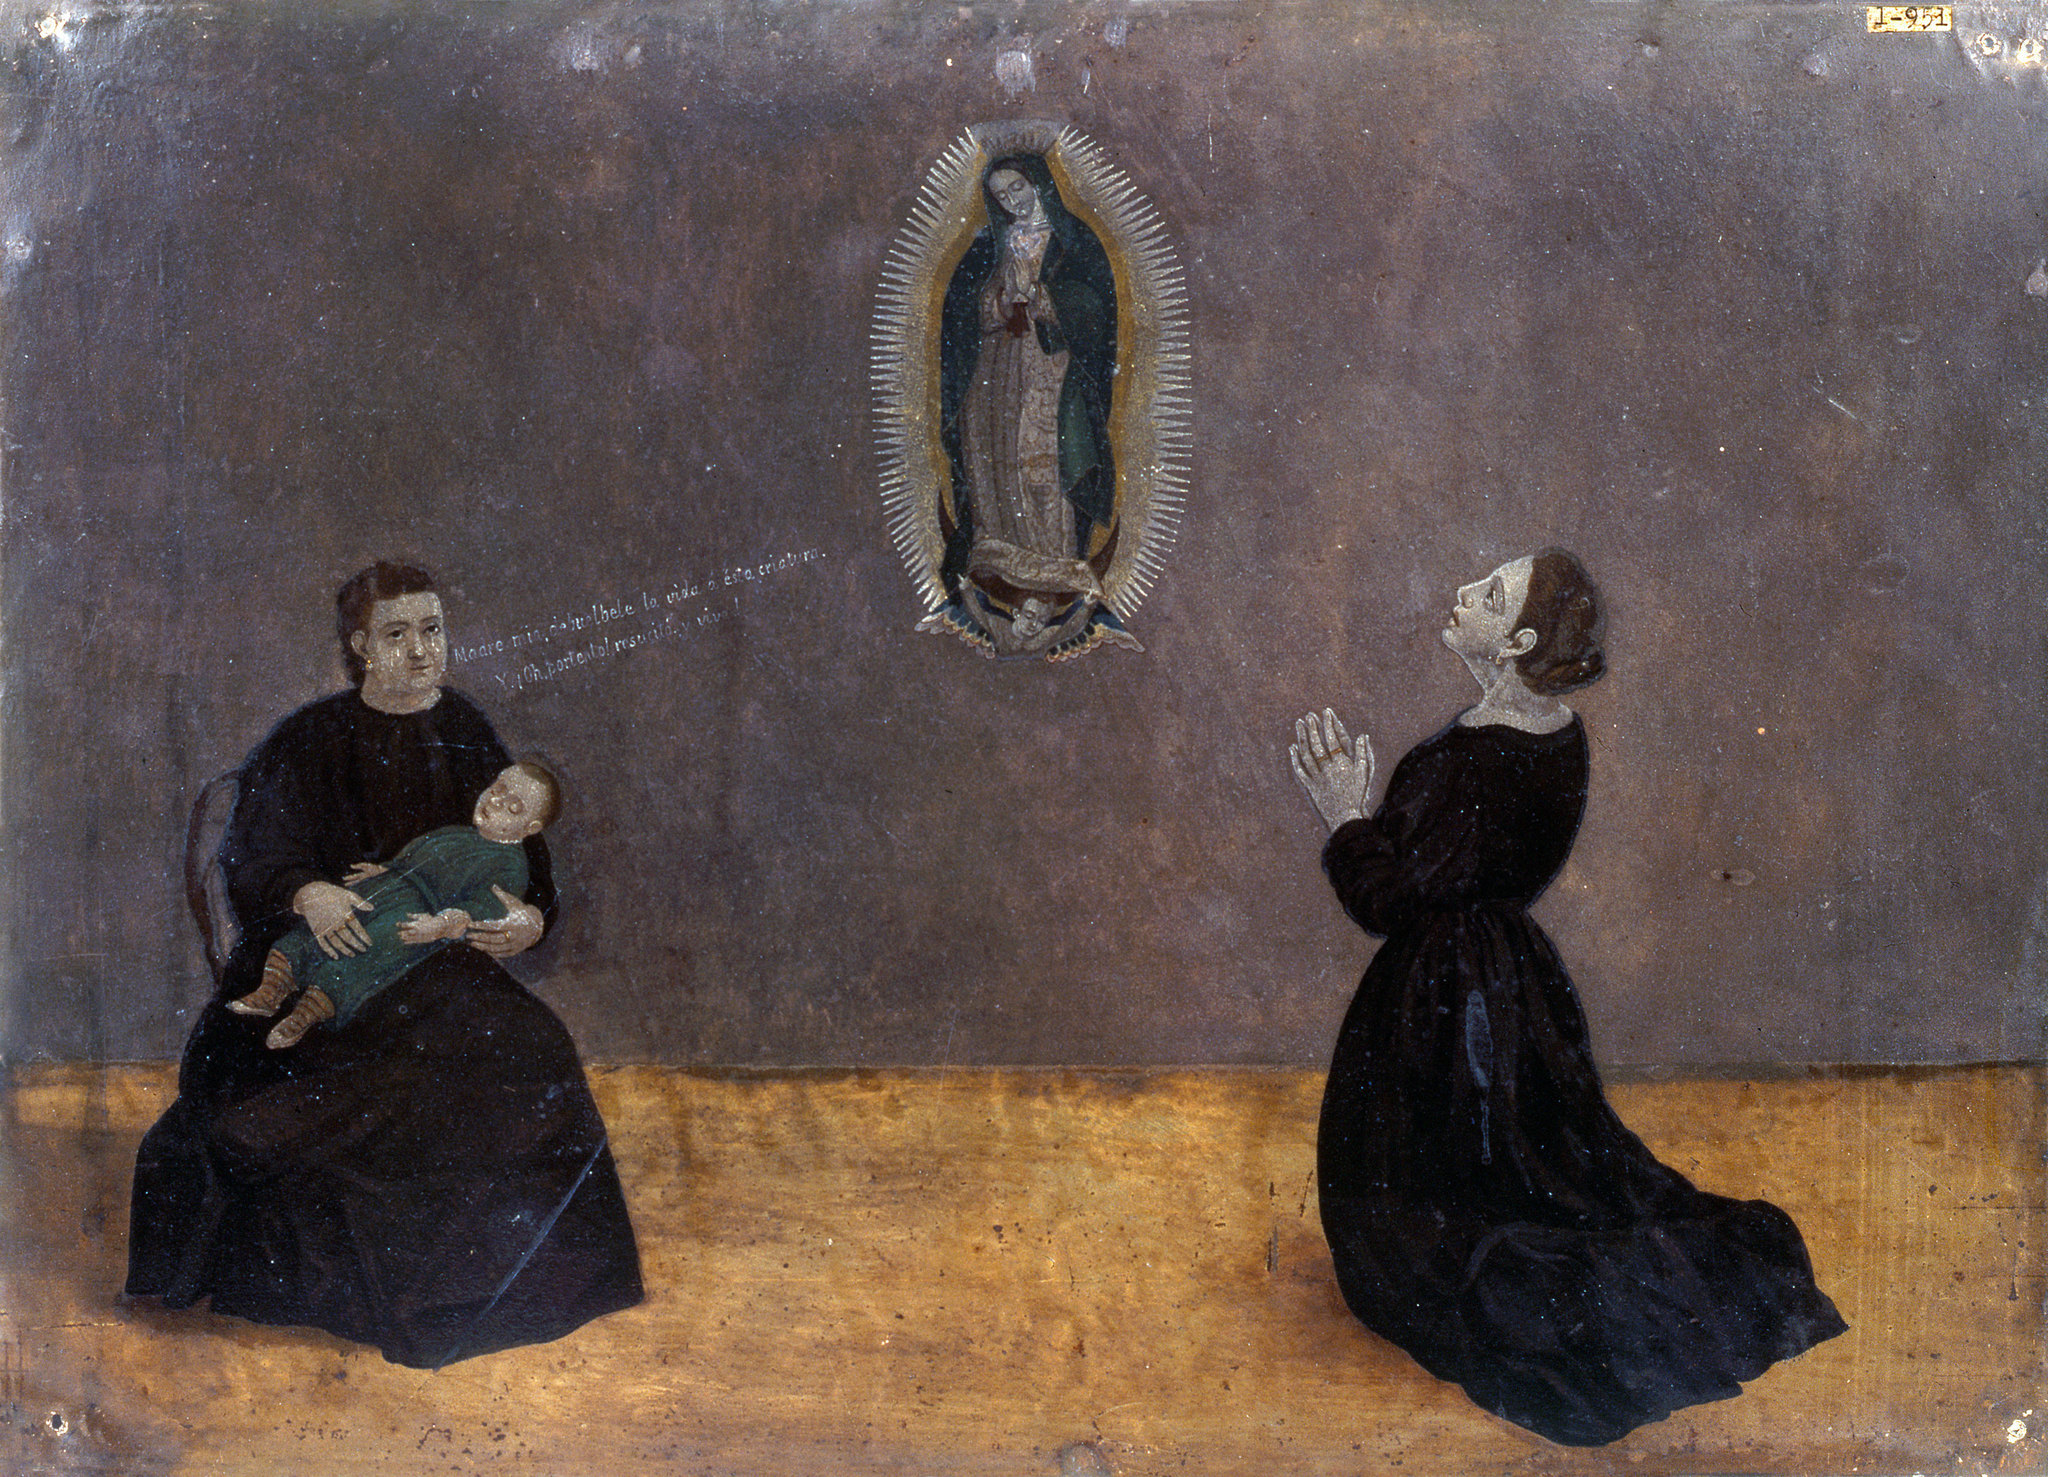 An exvoto created by an unknown artist in the late 19th century, part of an exhibition of art work inspired by the Virgin of Guadalupe at the Bowers Museum in Santa Ana.